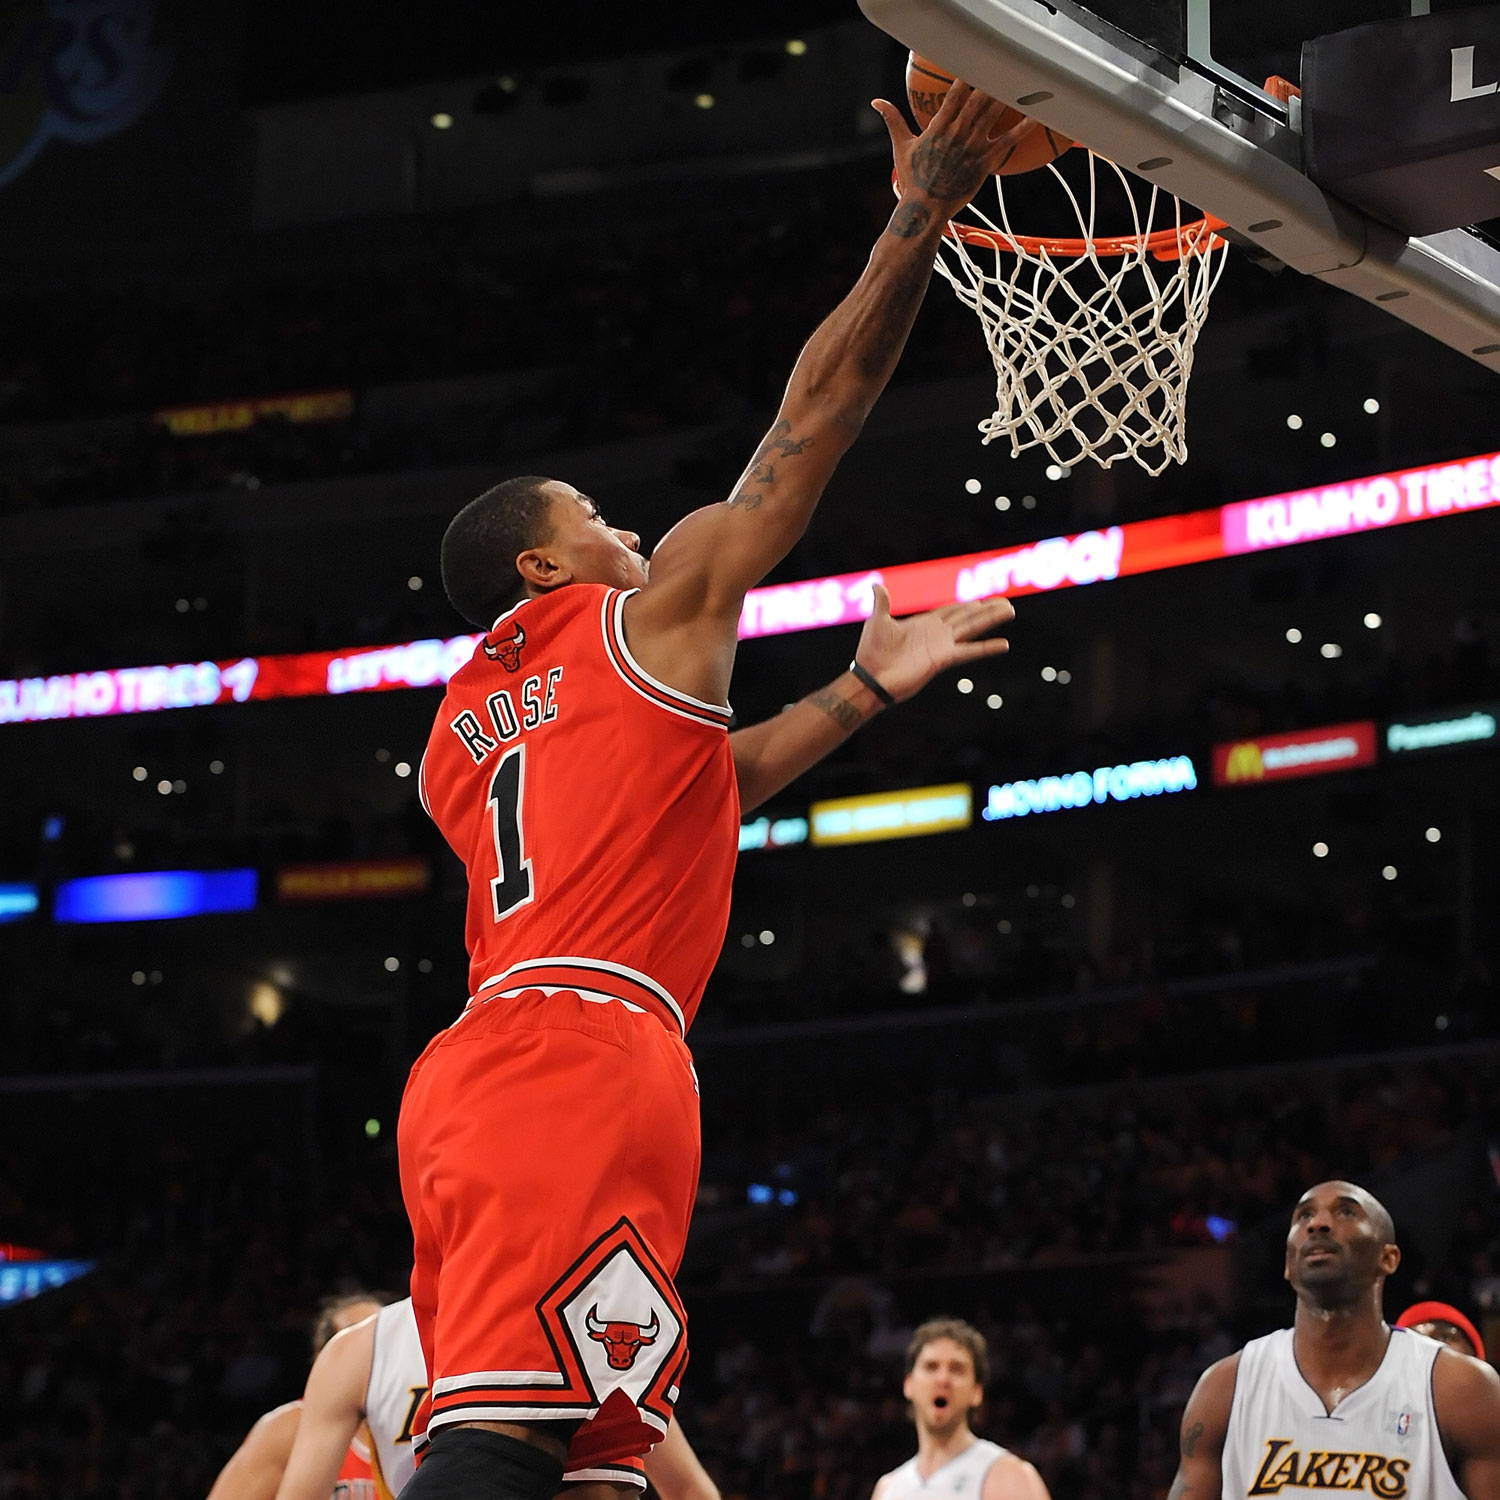 Derrick Rose against the Lakers on Christmas Day